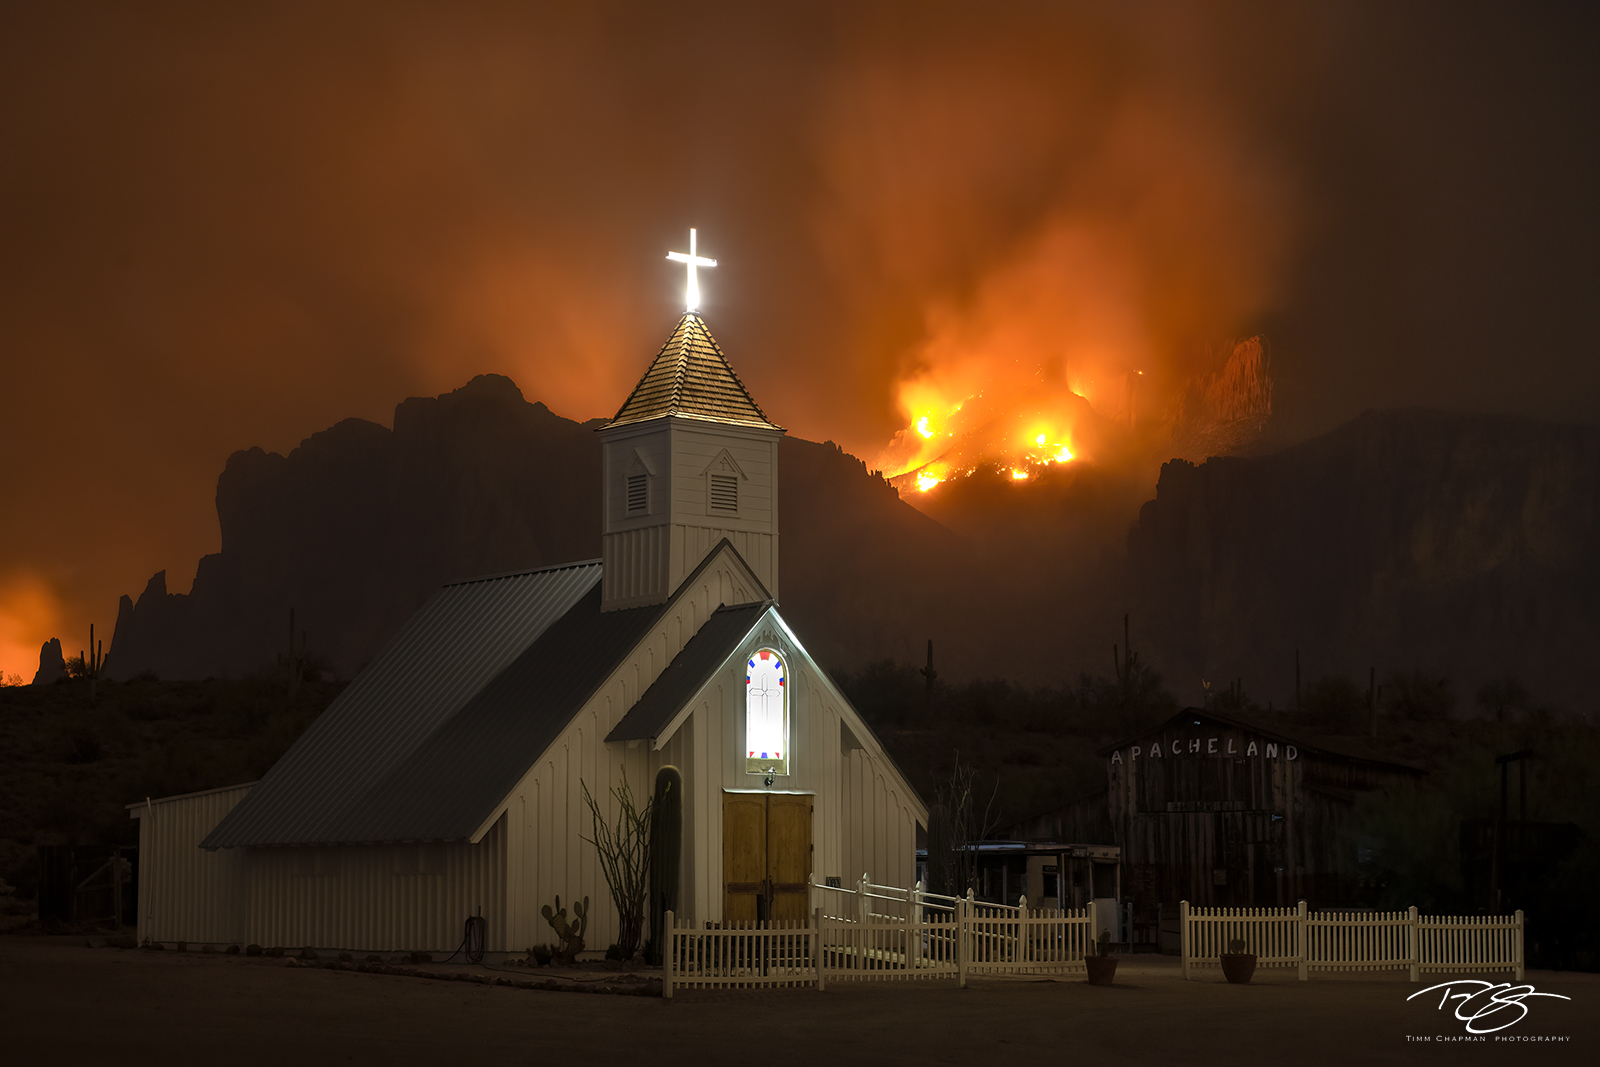 superstition mountain, superstition wilderness, elvis chapel, apacheland, night, forest fire, superstition wilderness, church, chapel, cross, fire, photo